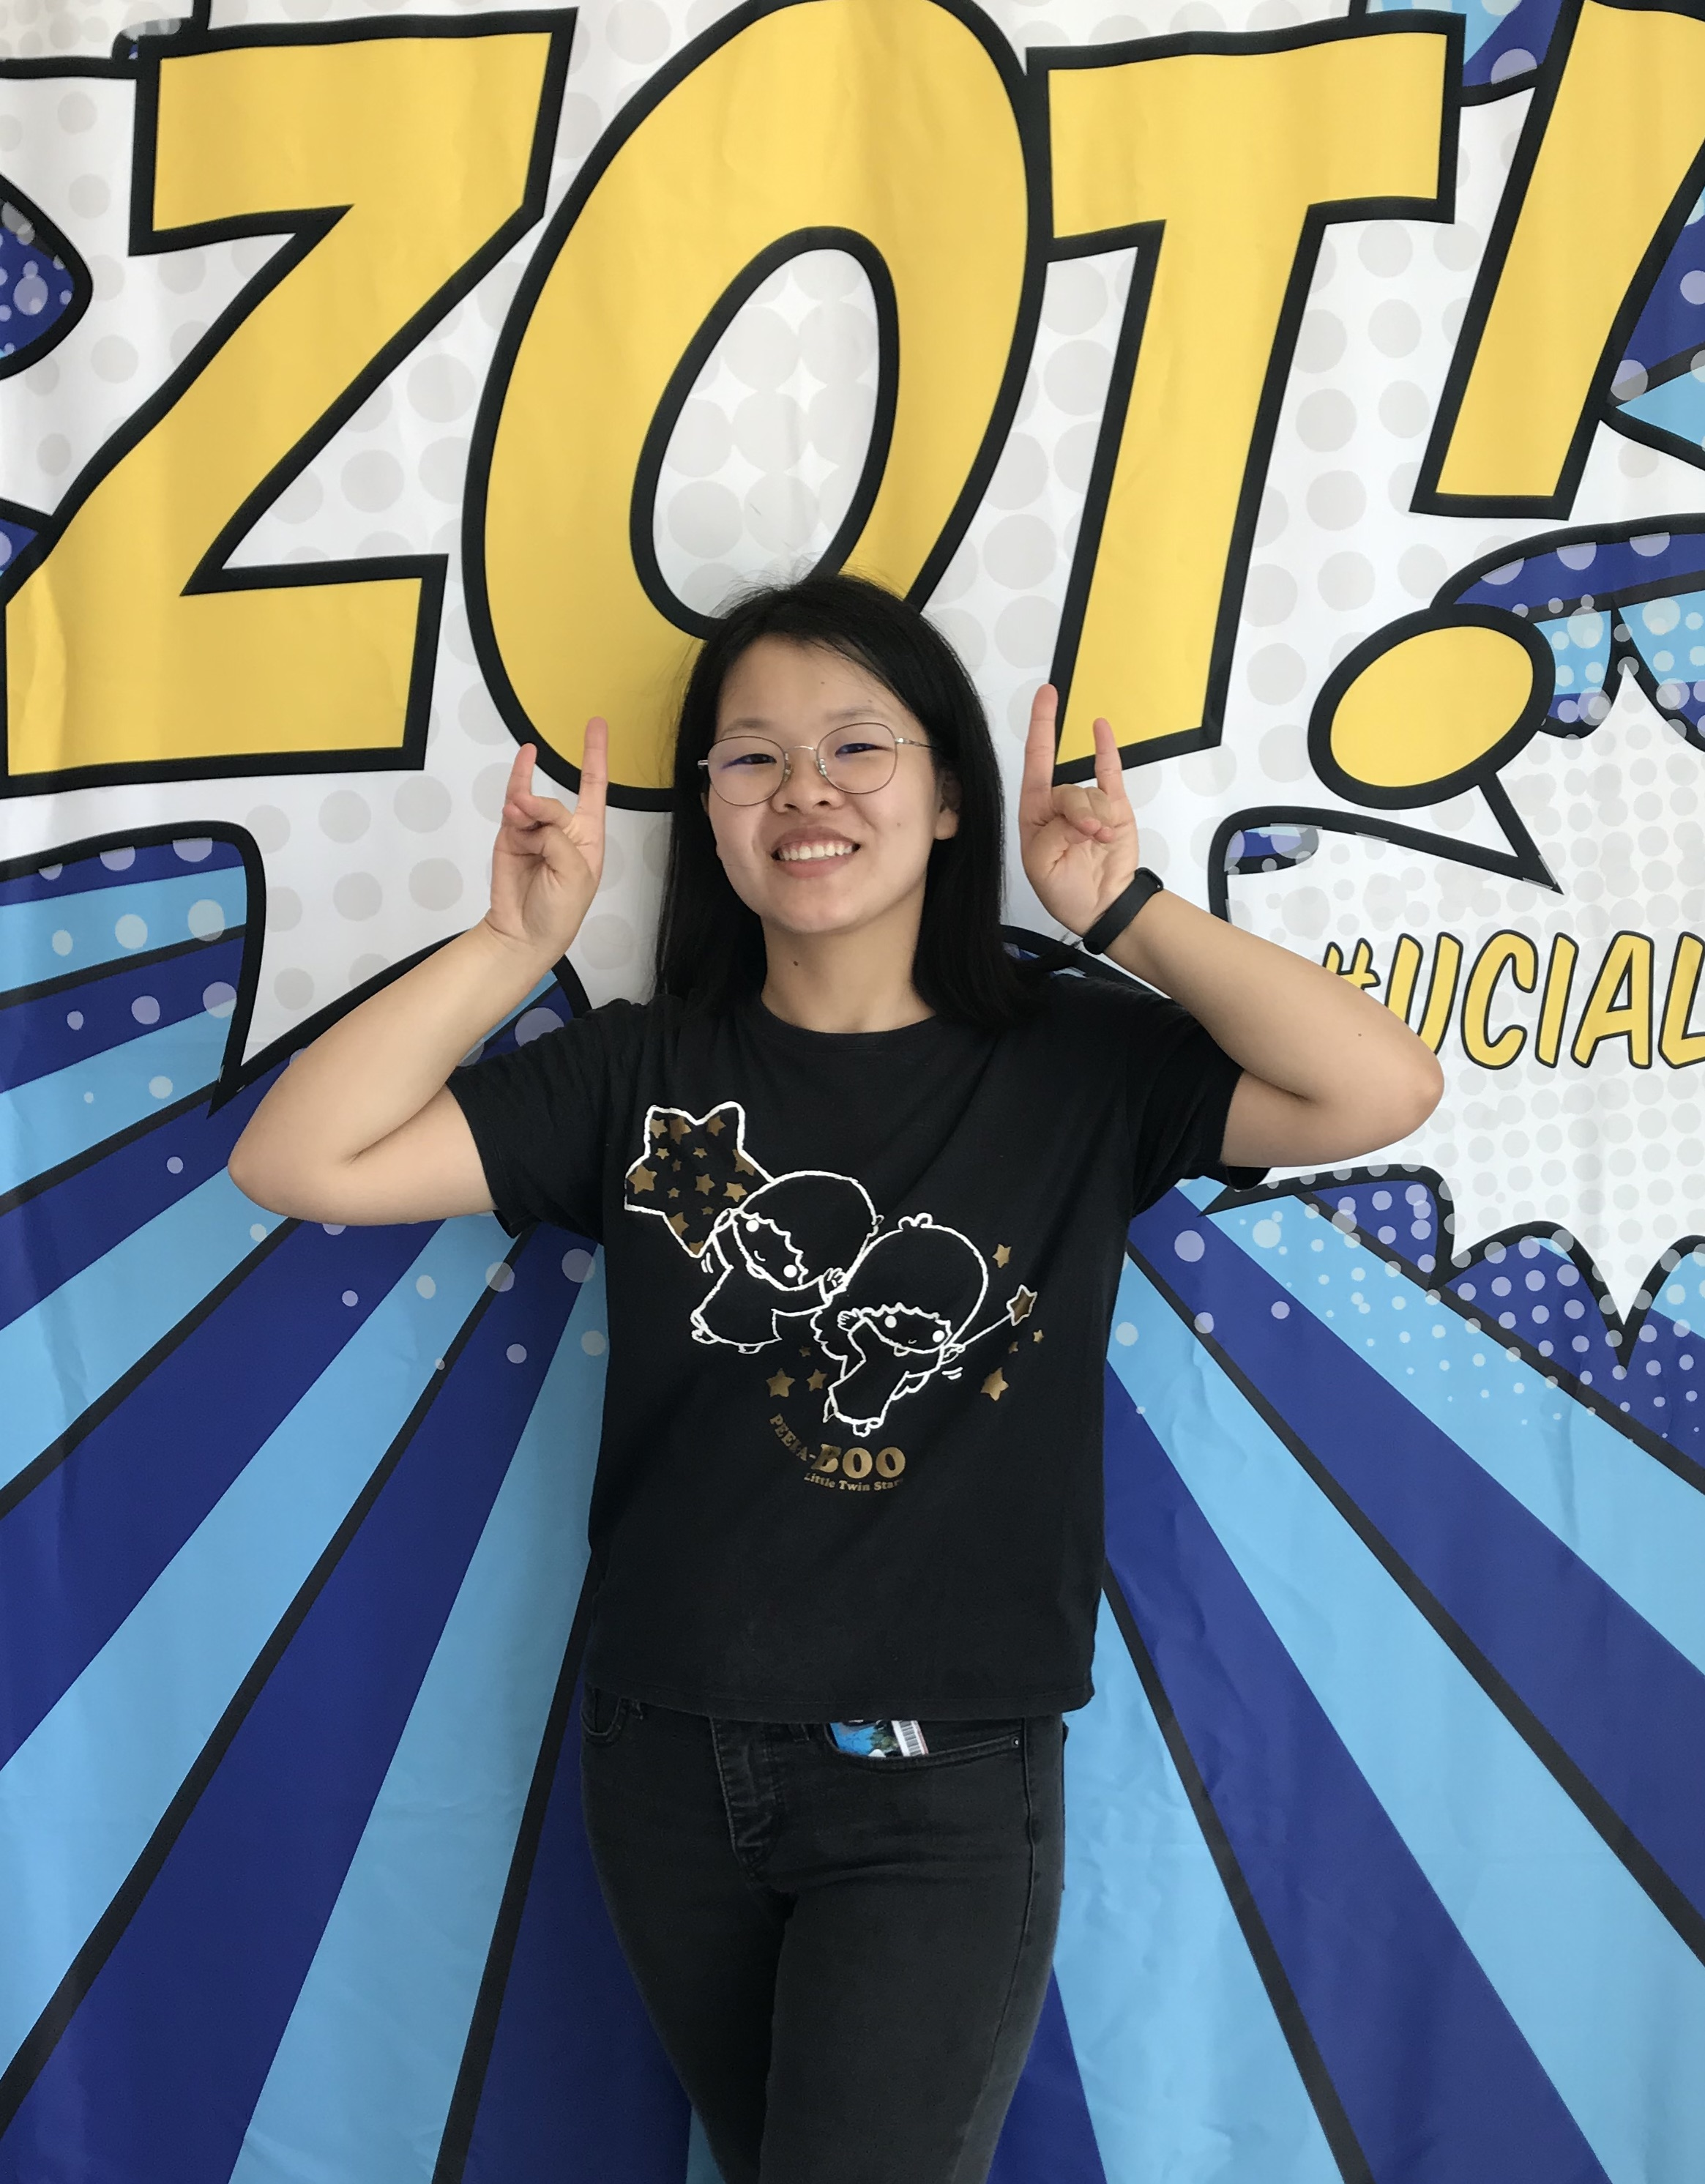 People – Zhao Lab